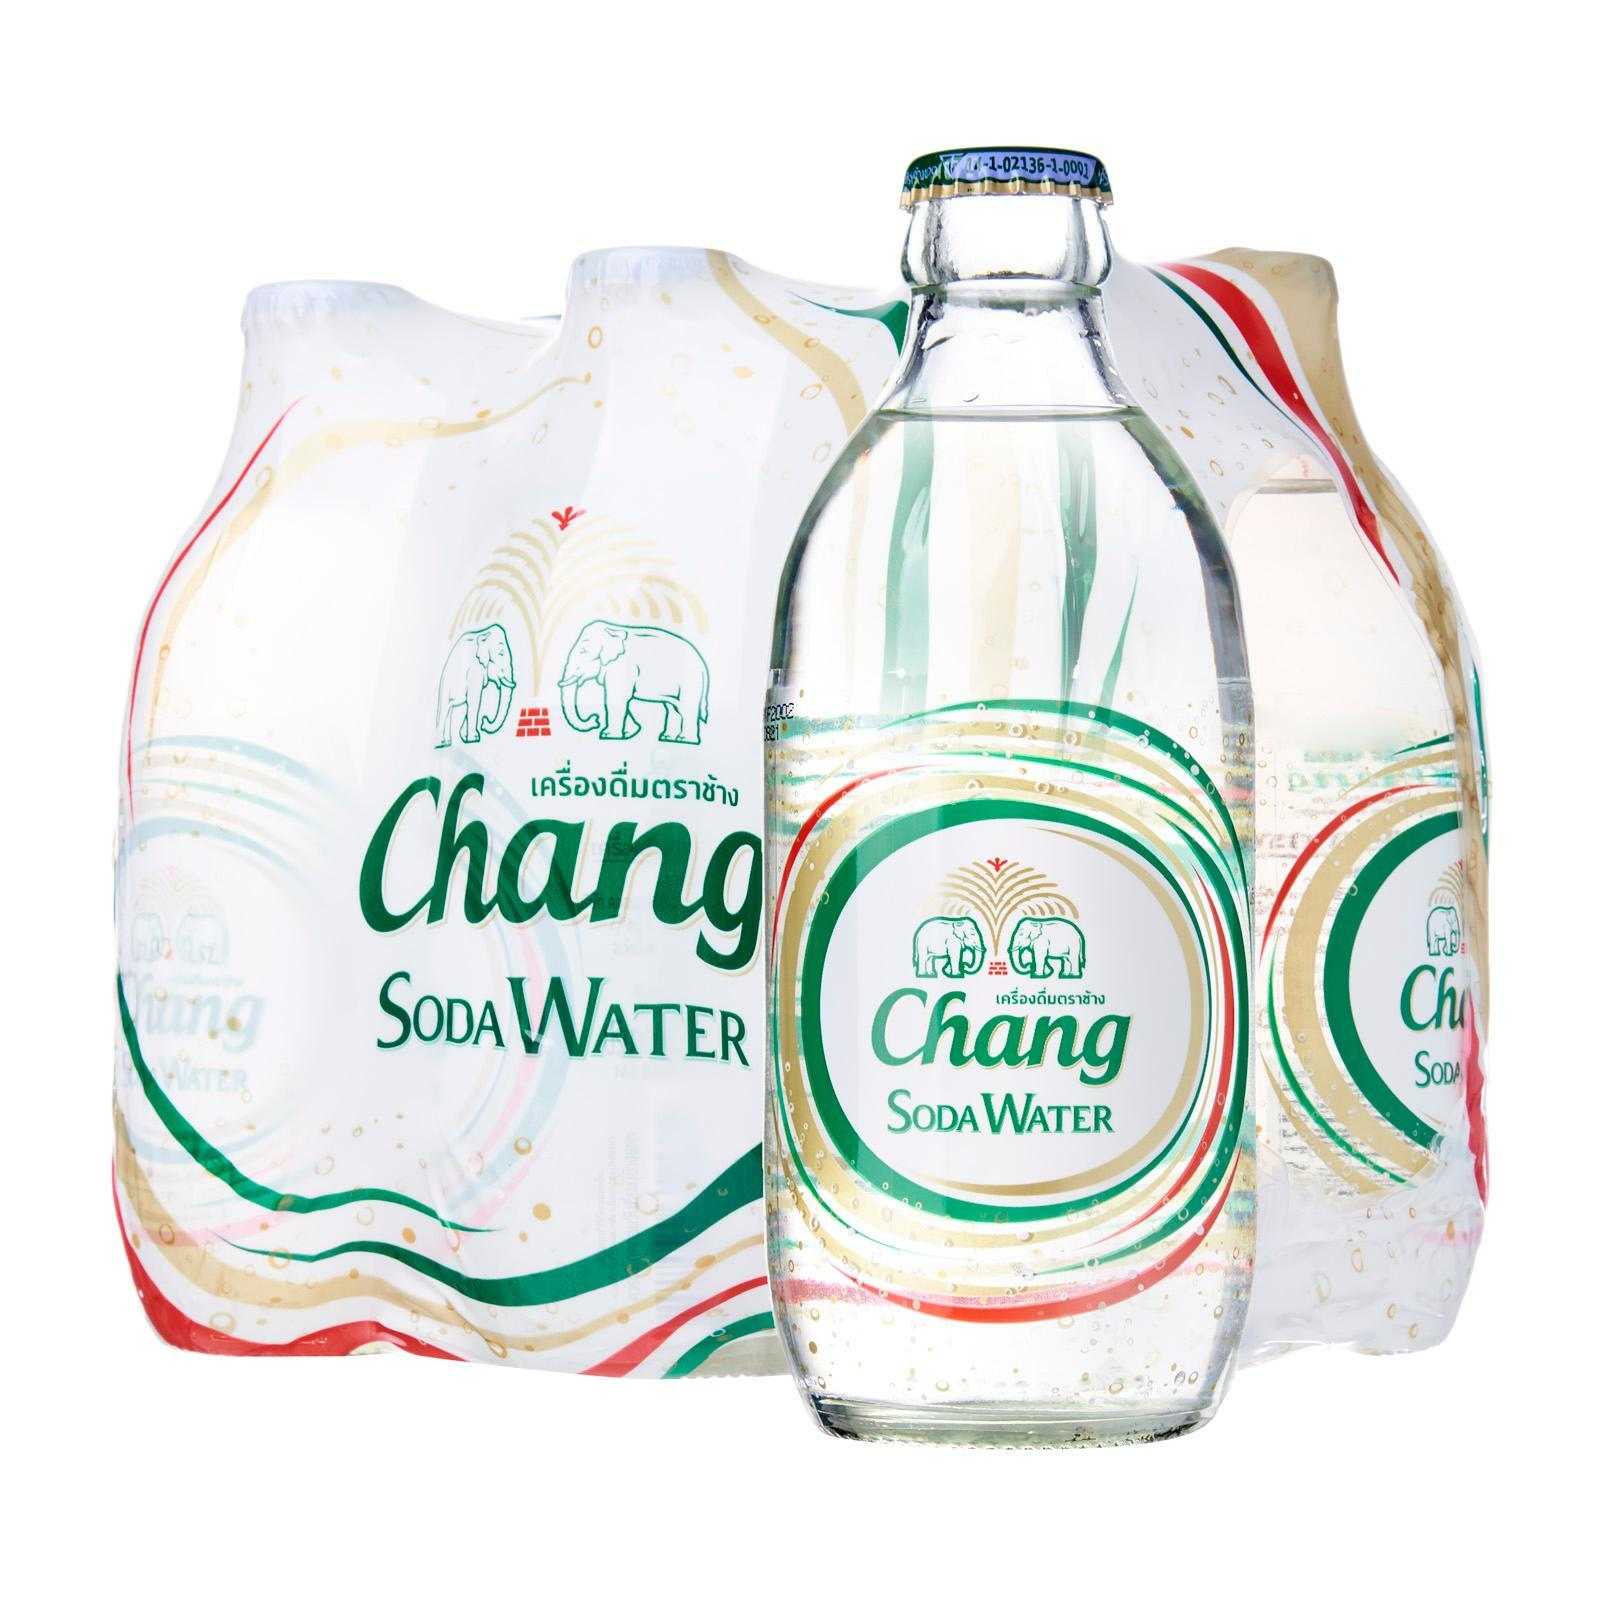 Chang Soda Water 325ml x 6 Glass Bottles